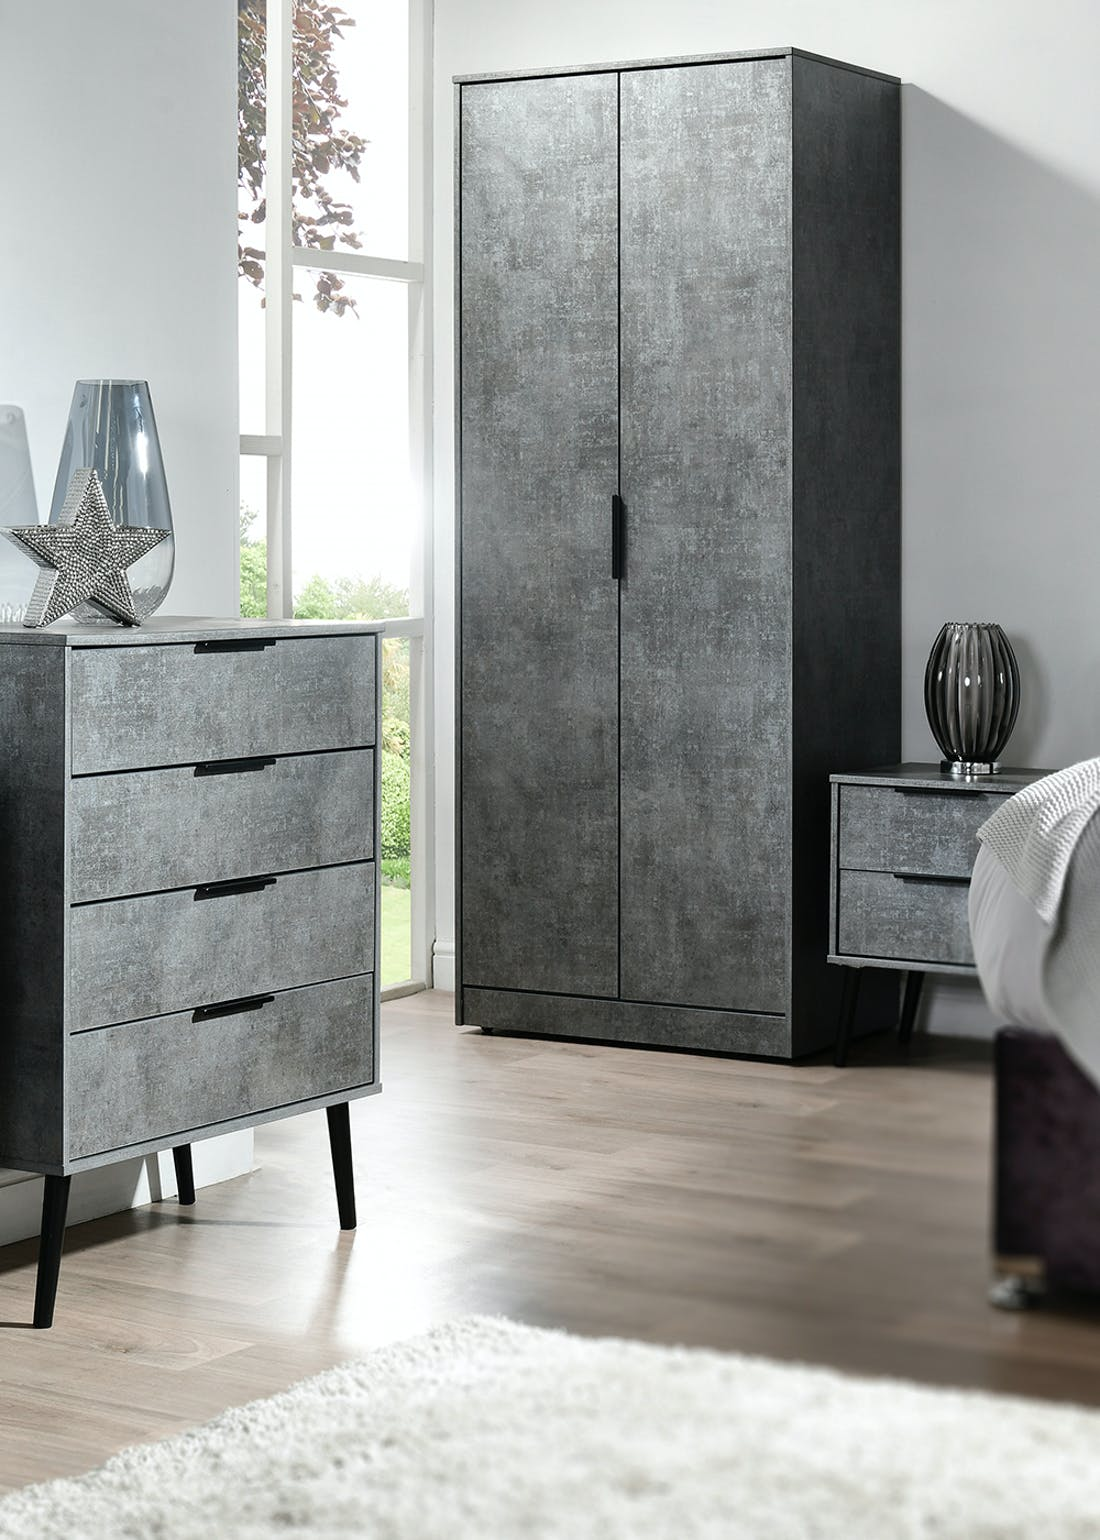 Swift Milano 2 Door 2 Drawer Wardrobe (201.5cm x 76.5cm x 53cm)